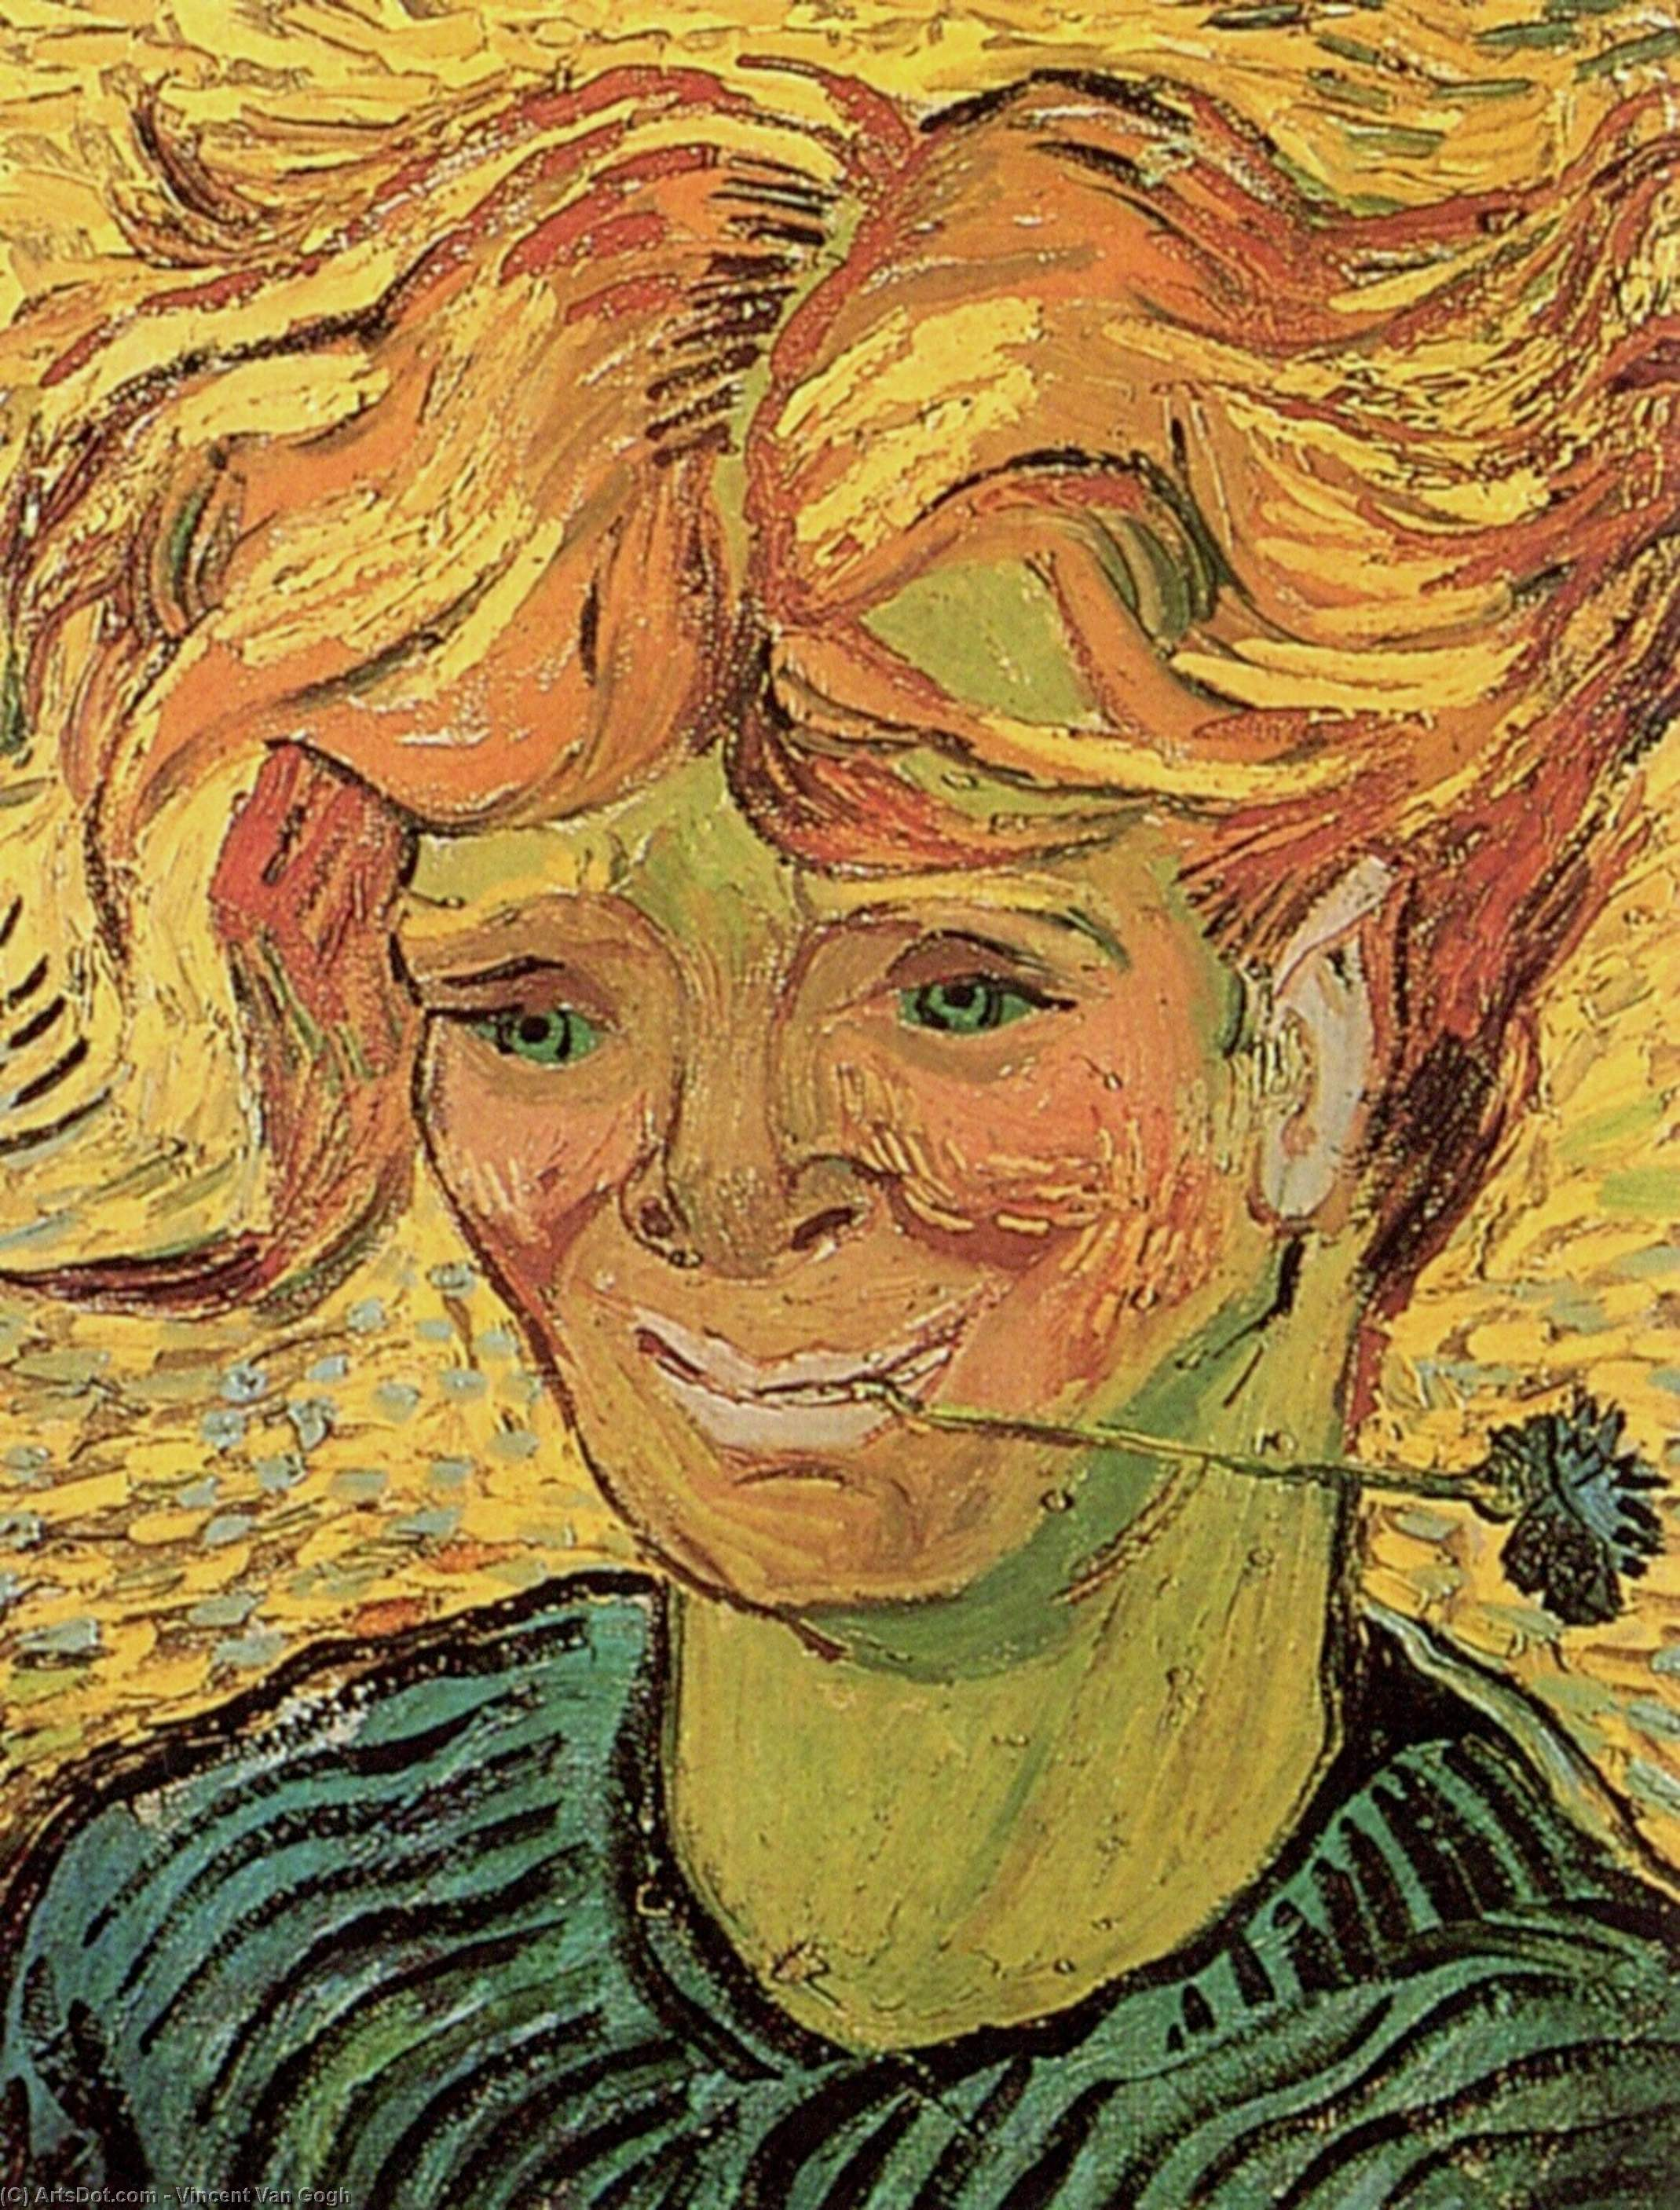 Wikioo.org - The Encyclopedia of Fine Arts - Painting, Artwork by Vincent Van Gogh - Young Man with Cornflower